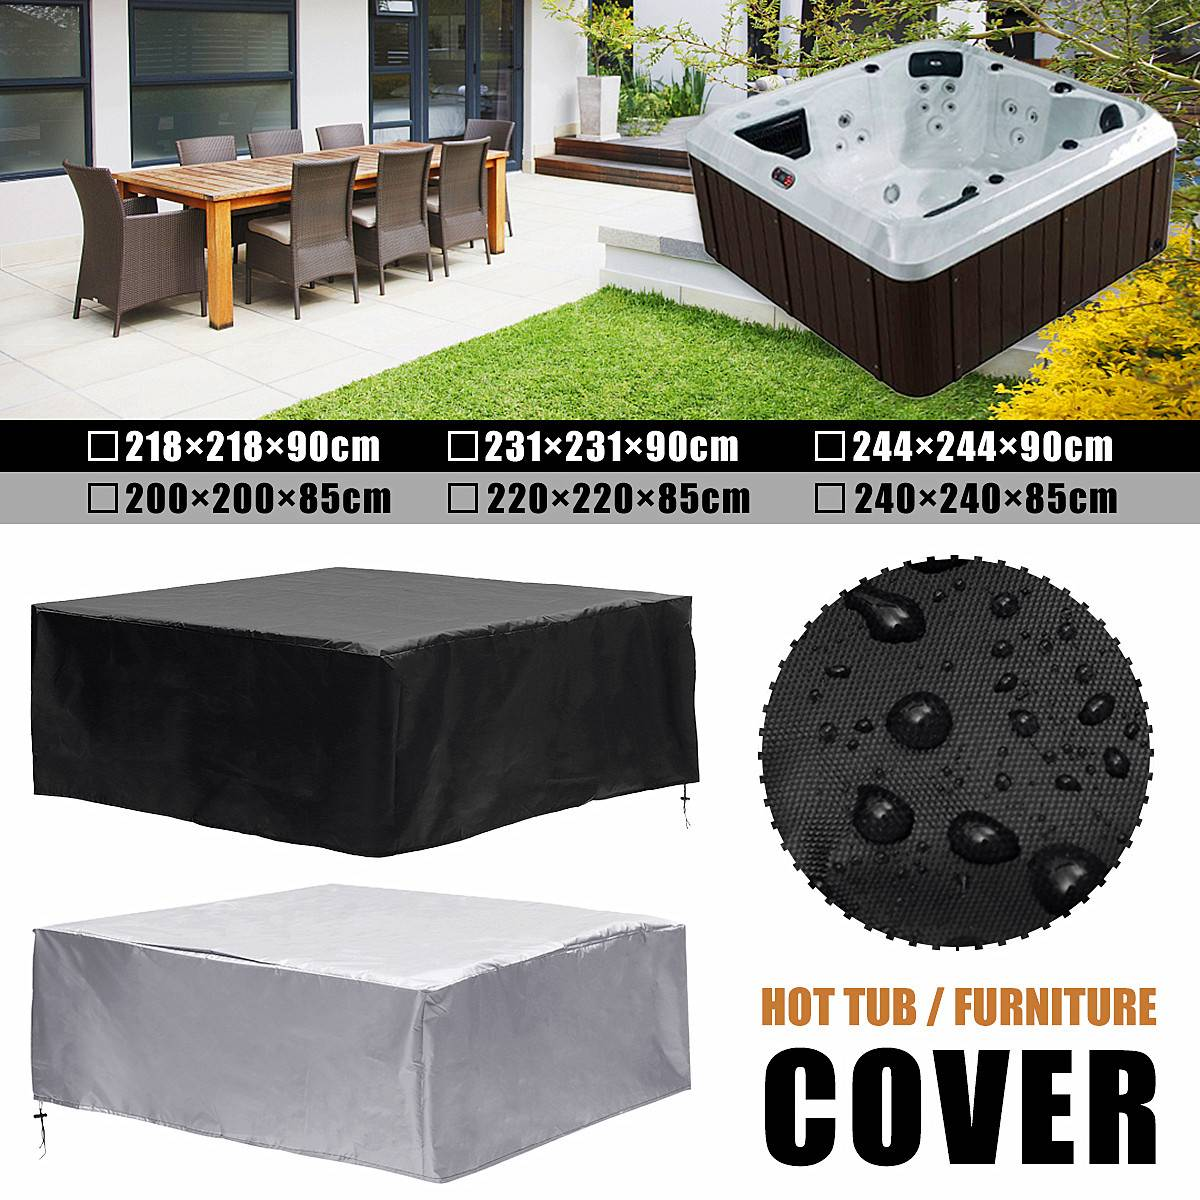 218/231/244*90cm 200/220/240*85cm Hot Tub Dust Cover Durable Anticorrosive Anti-uv Dust-proof Heat-resistant And Cold-resistant218/231/244*90cm 200/220/240*85cm Hot Tub Dust Cover Durable Anticorrosive Anti-uv Dust-proof Heat-resistant And Cold-resistant